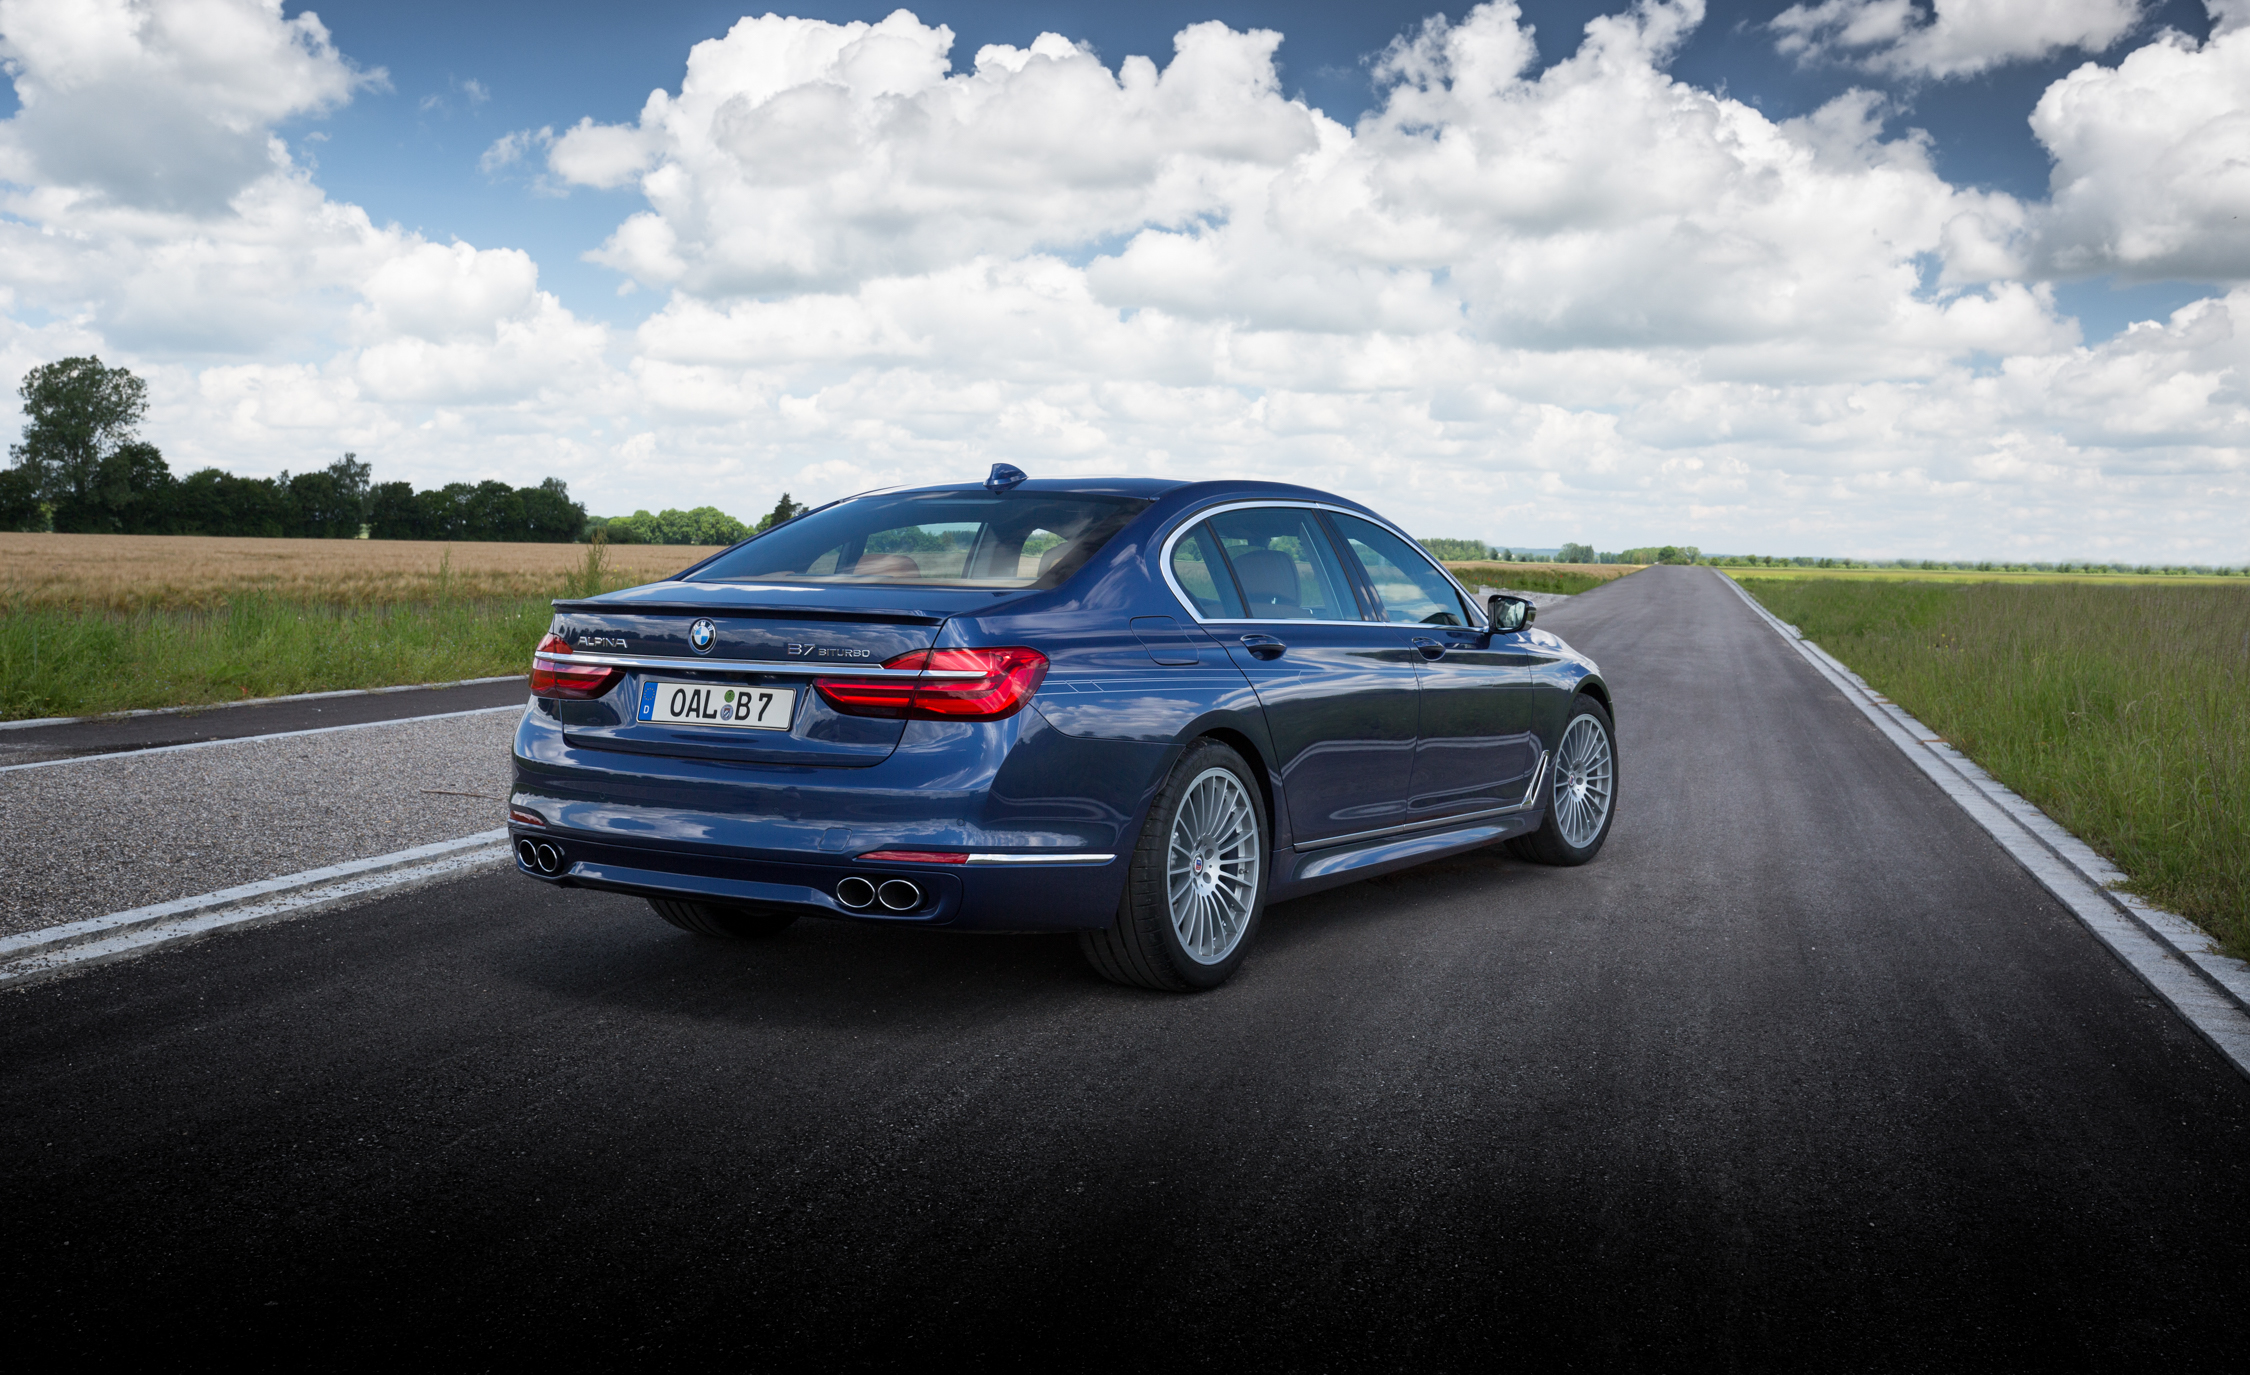 2017 BMW Alpina B7 Exterior Side And Rear (View 42 of 45)